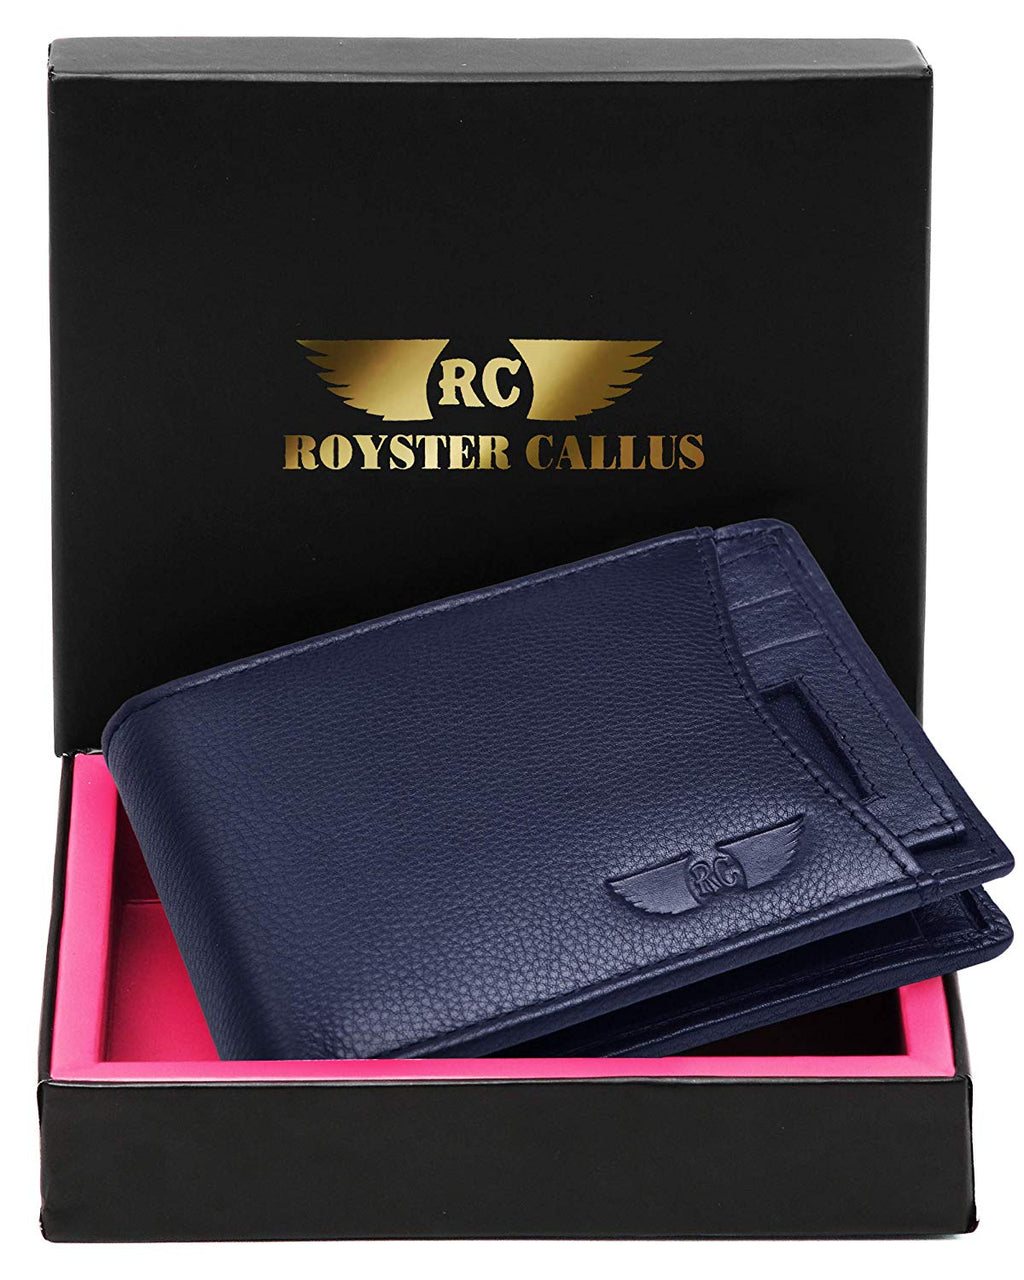 Royster Callus Blue Men's Wallet - WILDHORN